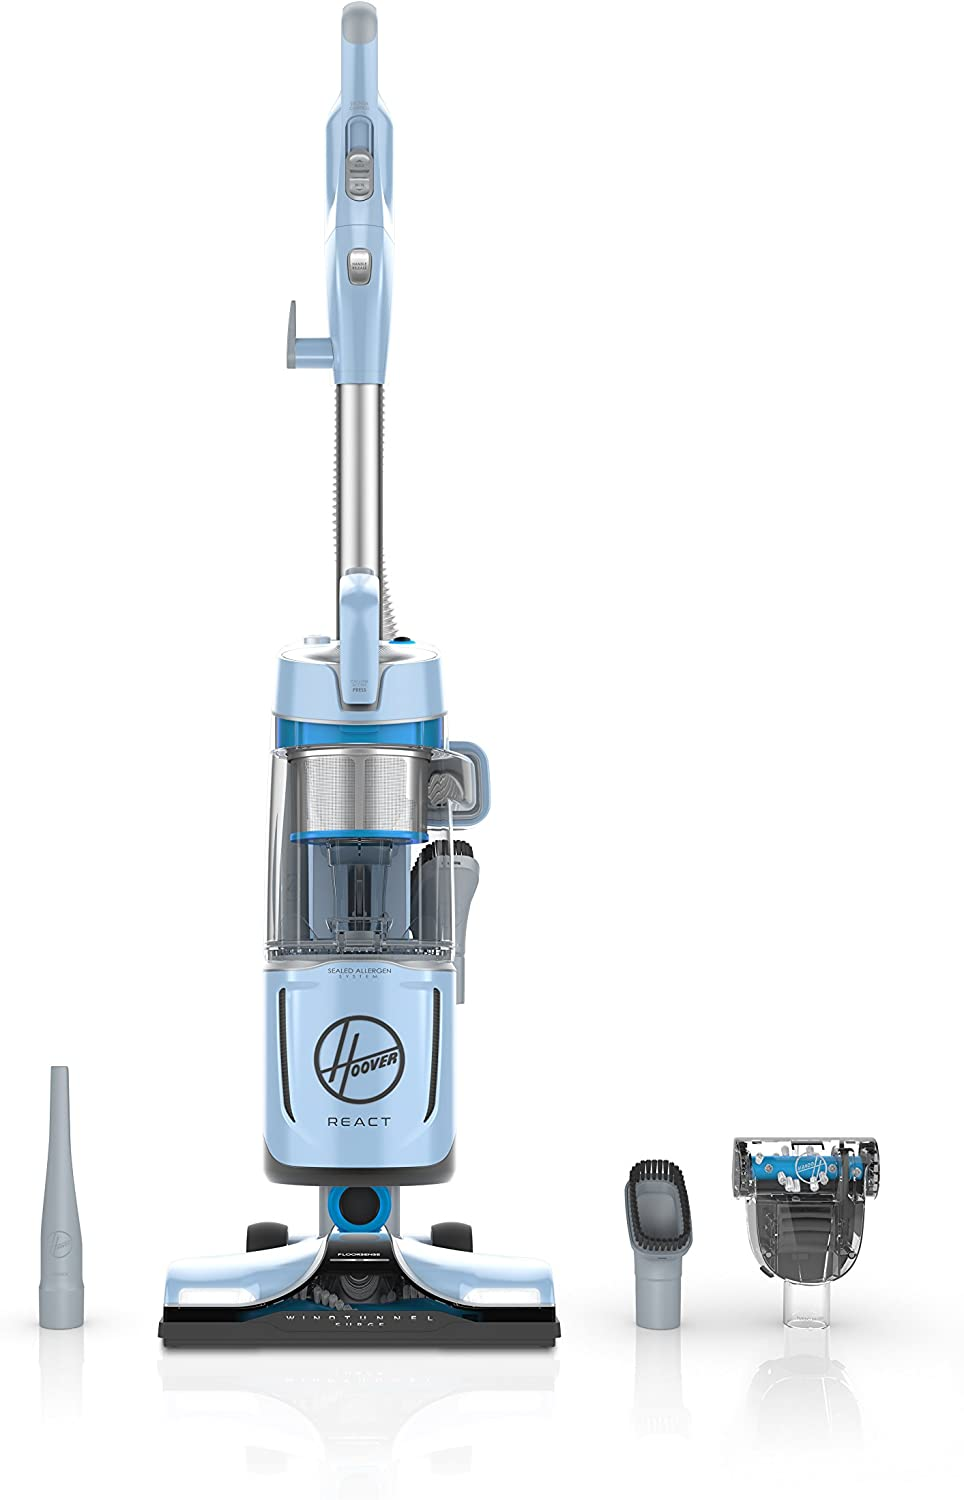 Hoover React QuickLift In Elegant a popularity Bagless Upright HEPA Cleaner with Vacuum